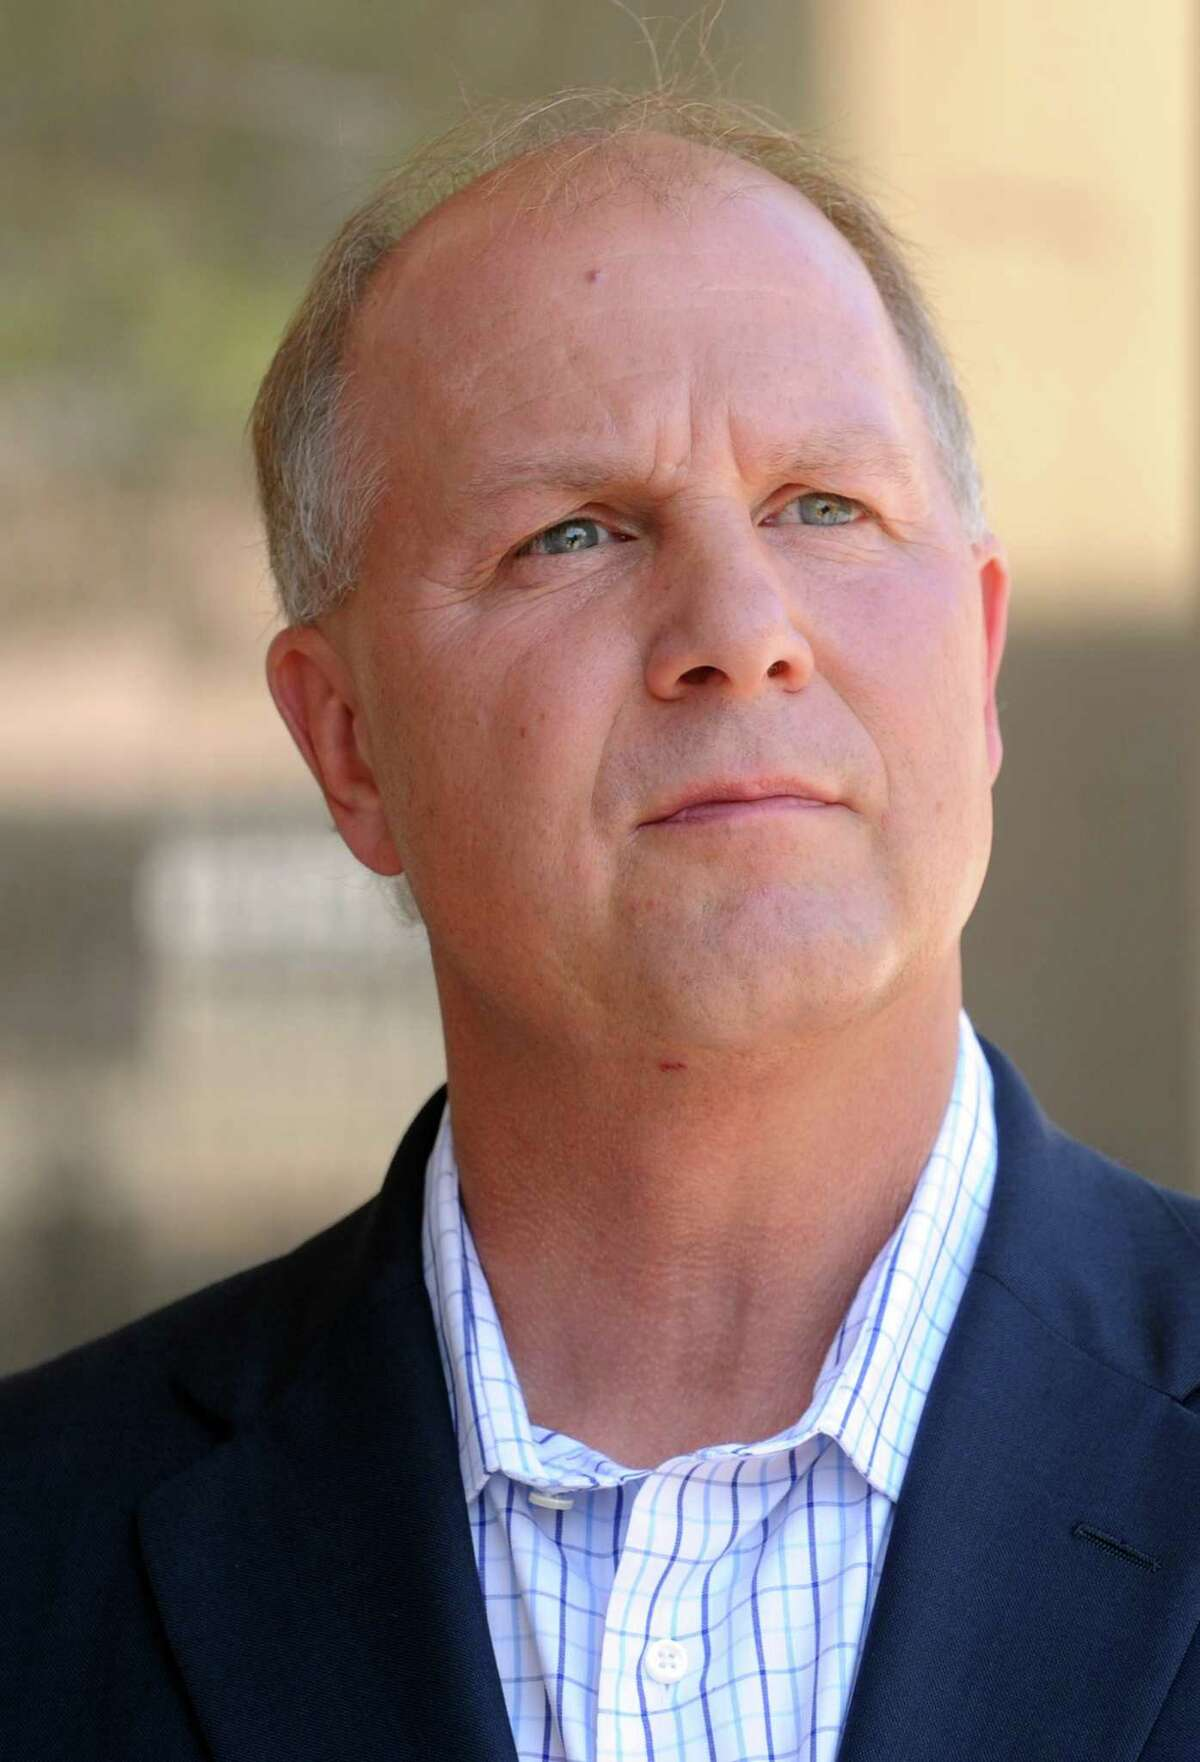 City Attorney R. Christopher Meyer was paid $4,773 for unused vacation days.